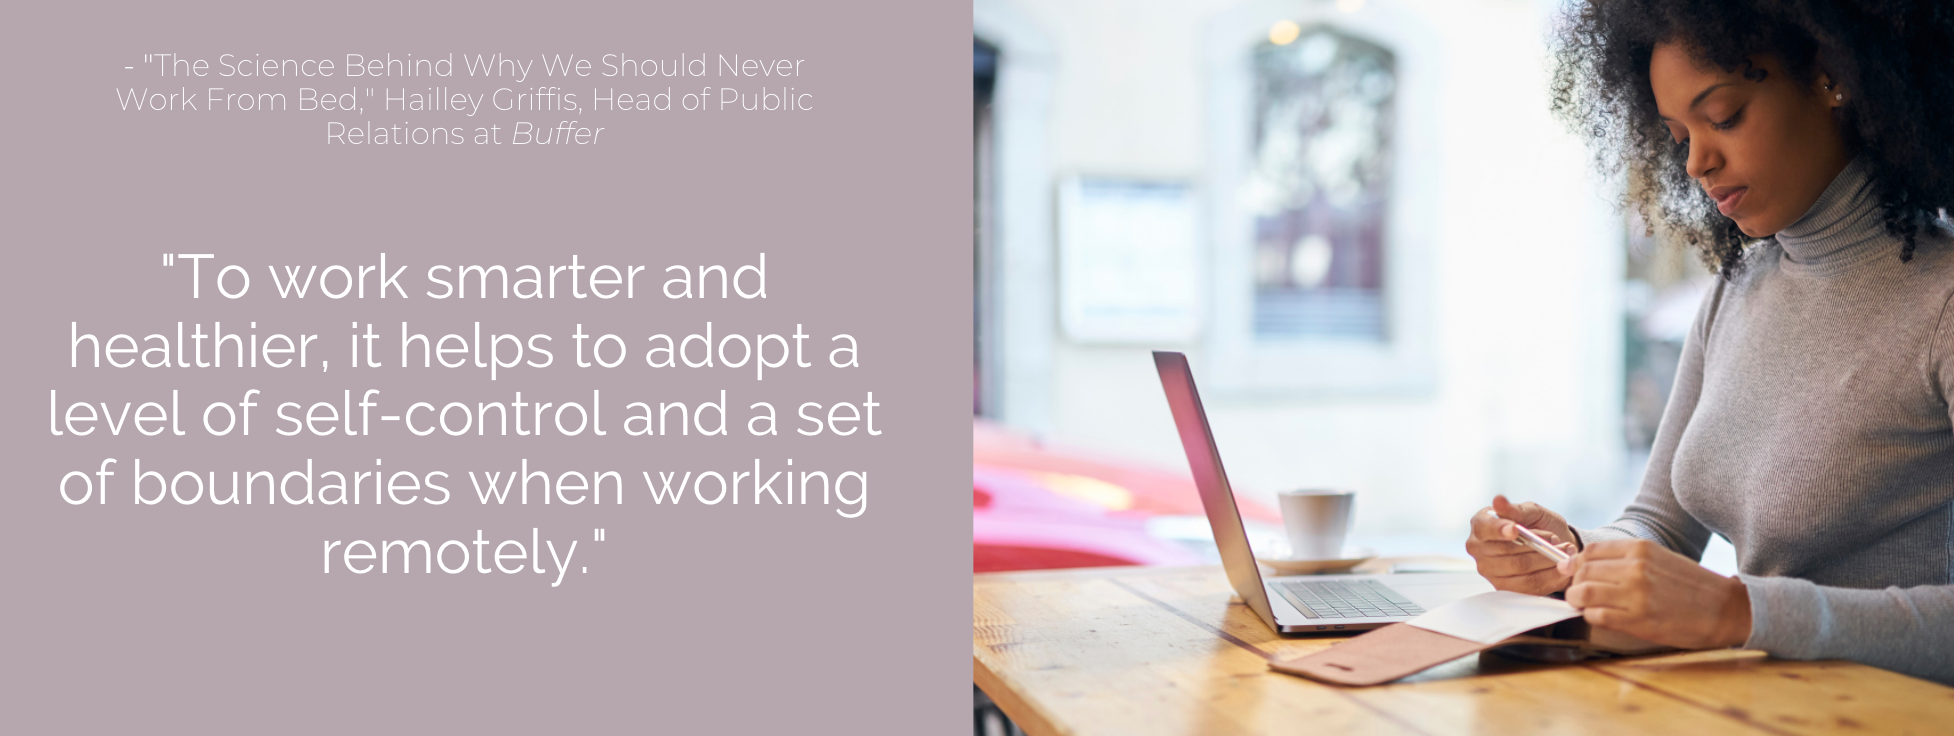 To work smarter and healthier, it helps to adopt a level of self-control and a set of boundaries when working remotely